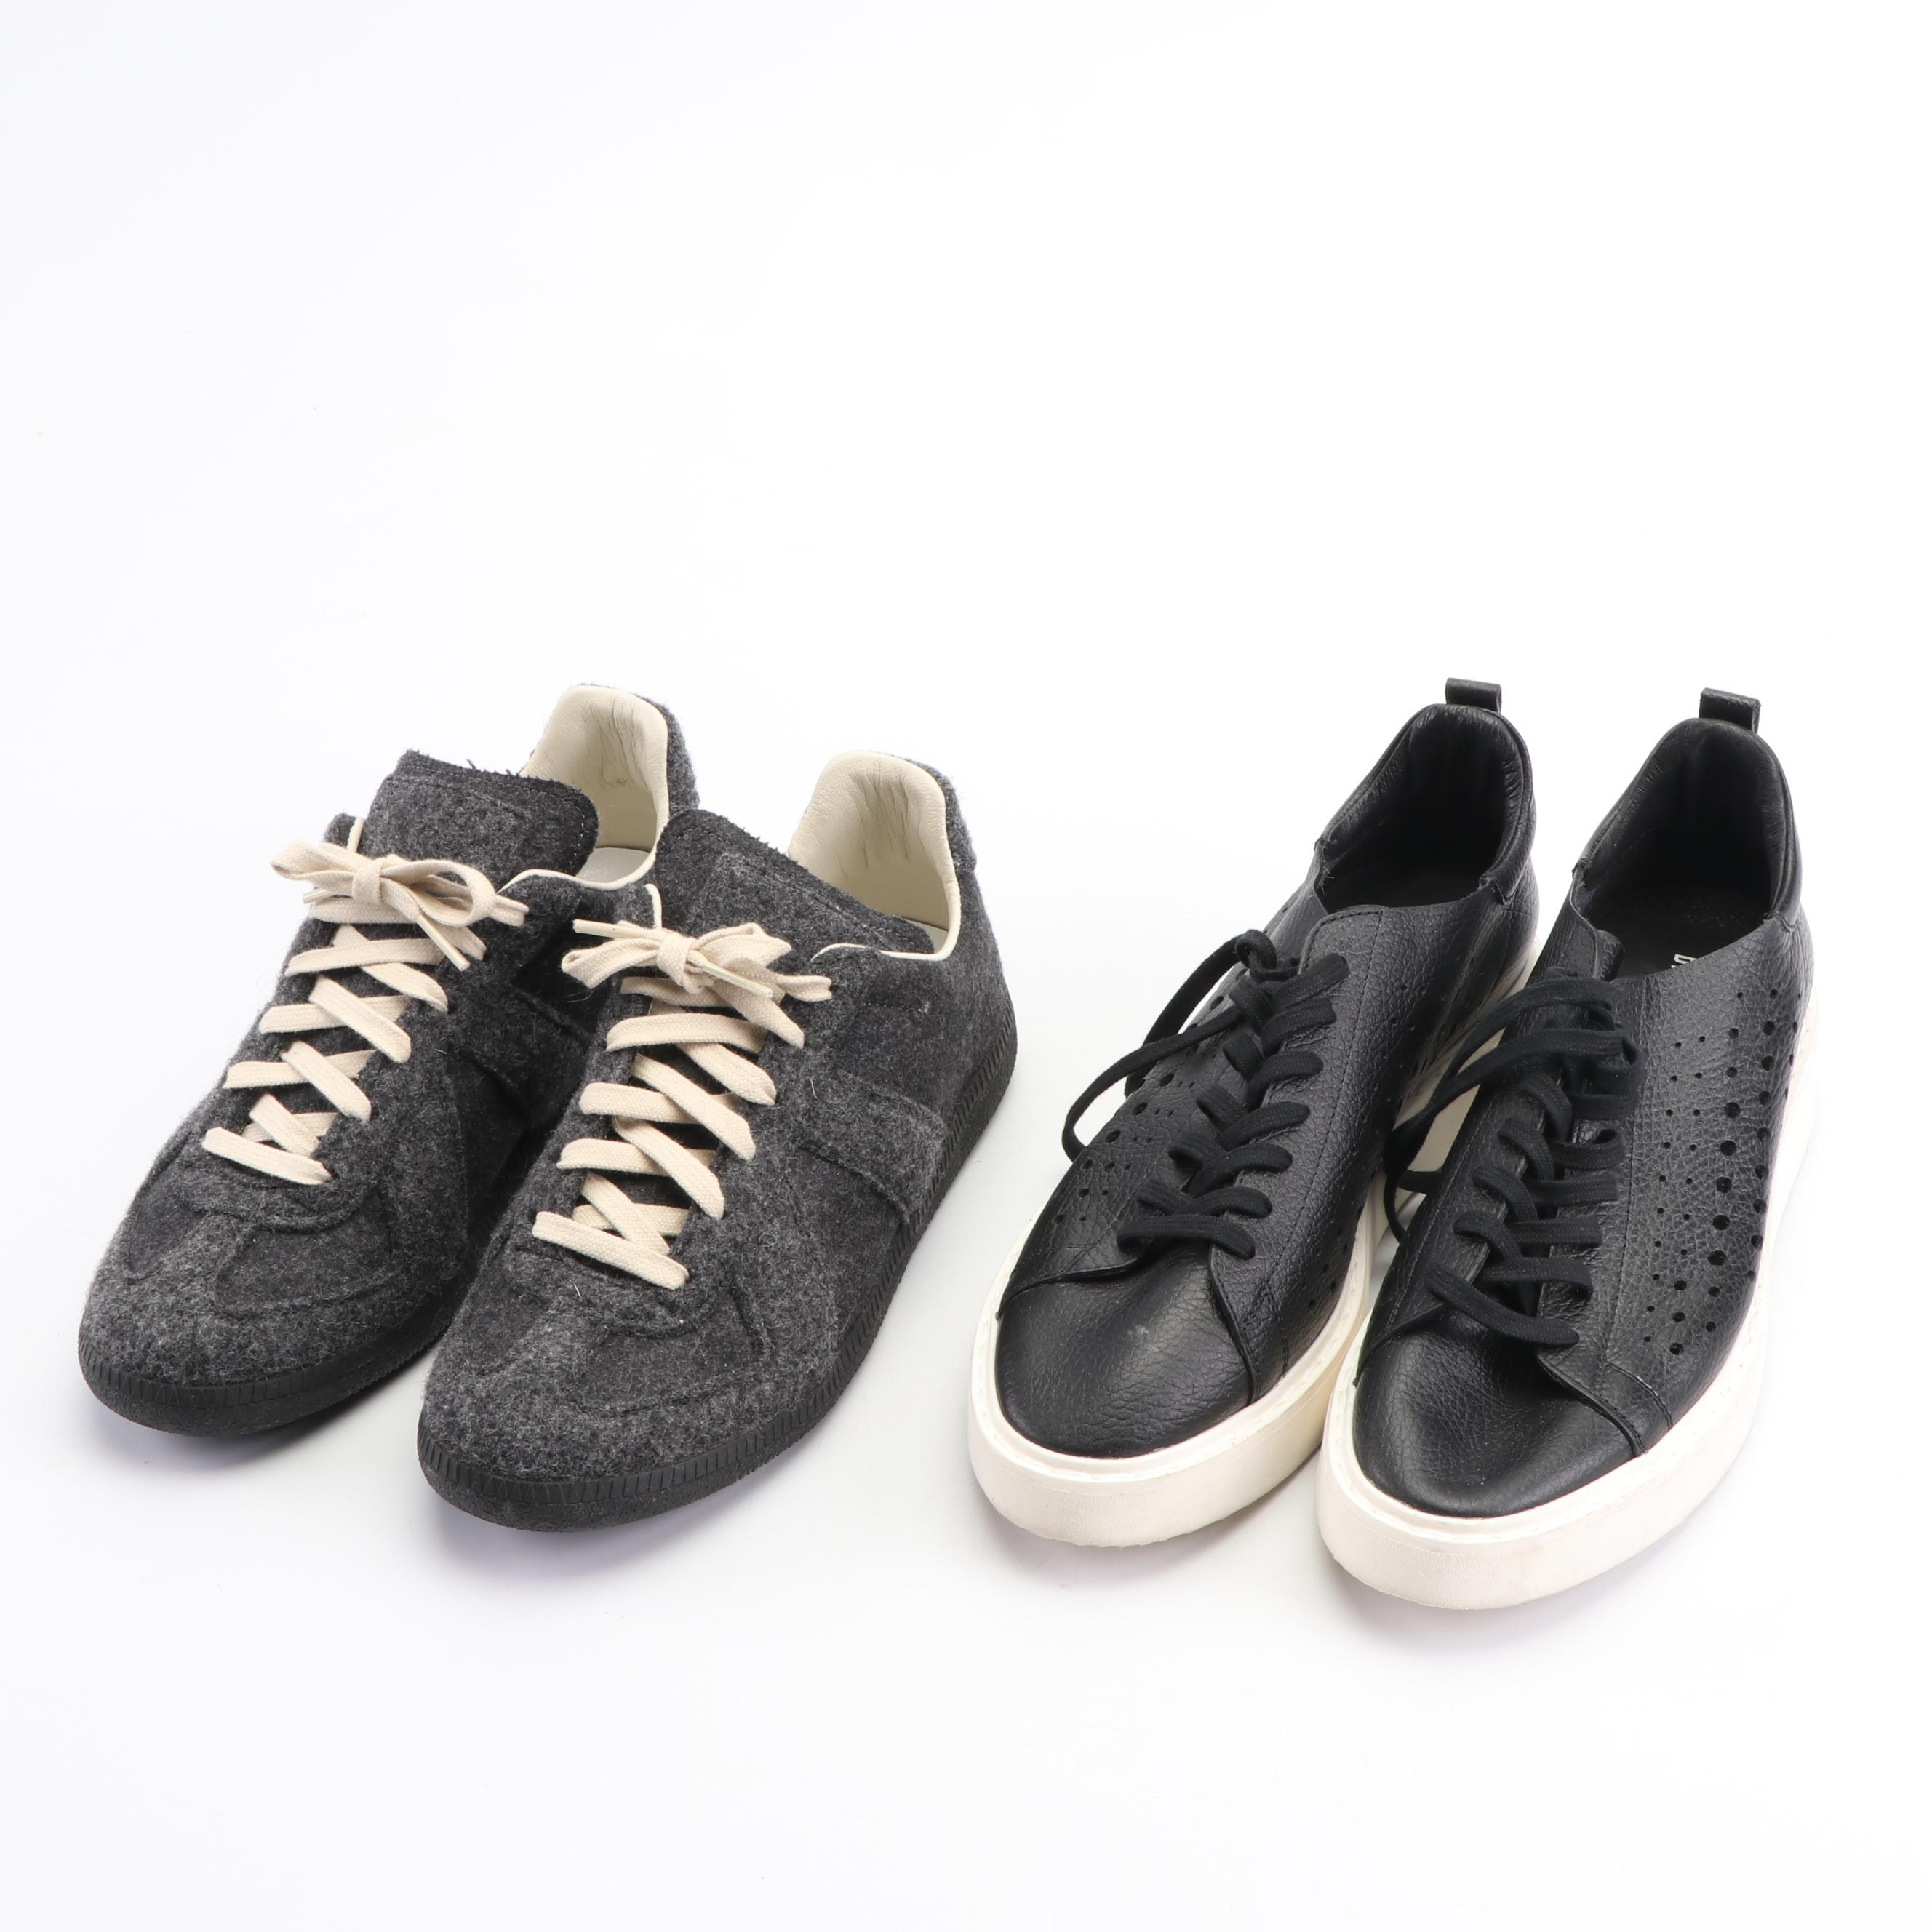 Maison Margiela Grey Felted Wool and Bikkembergs Black Pierced Leather Sneakers